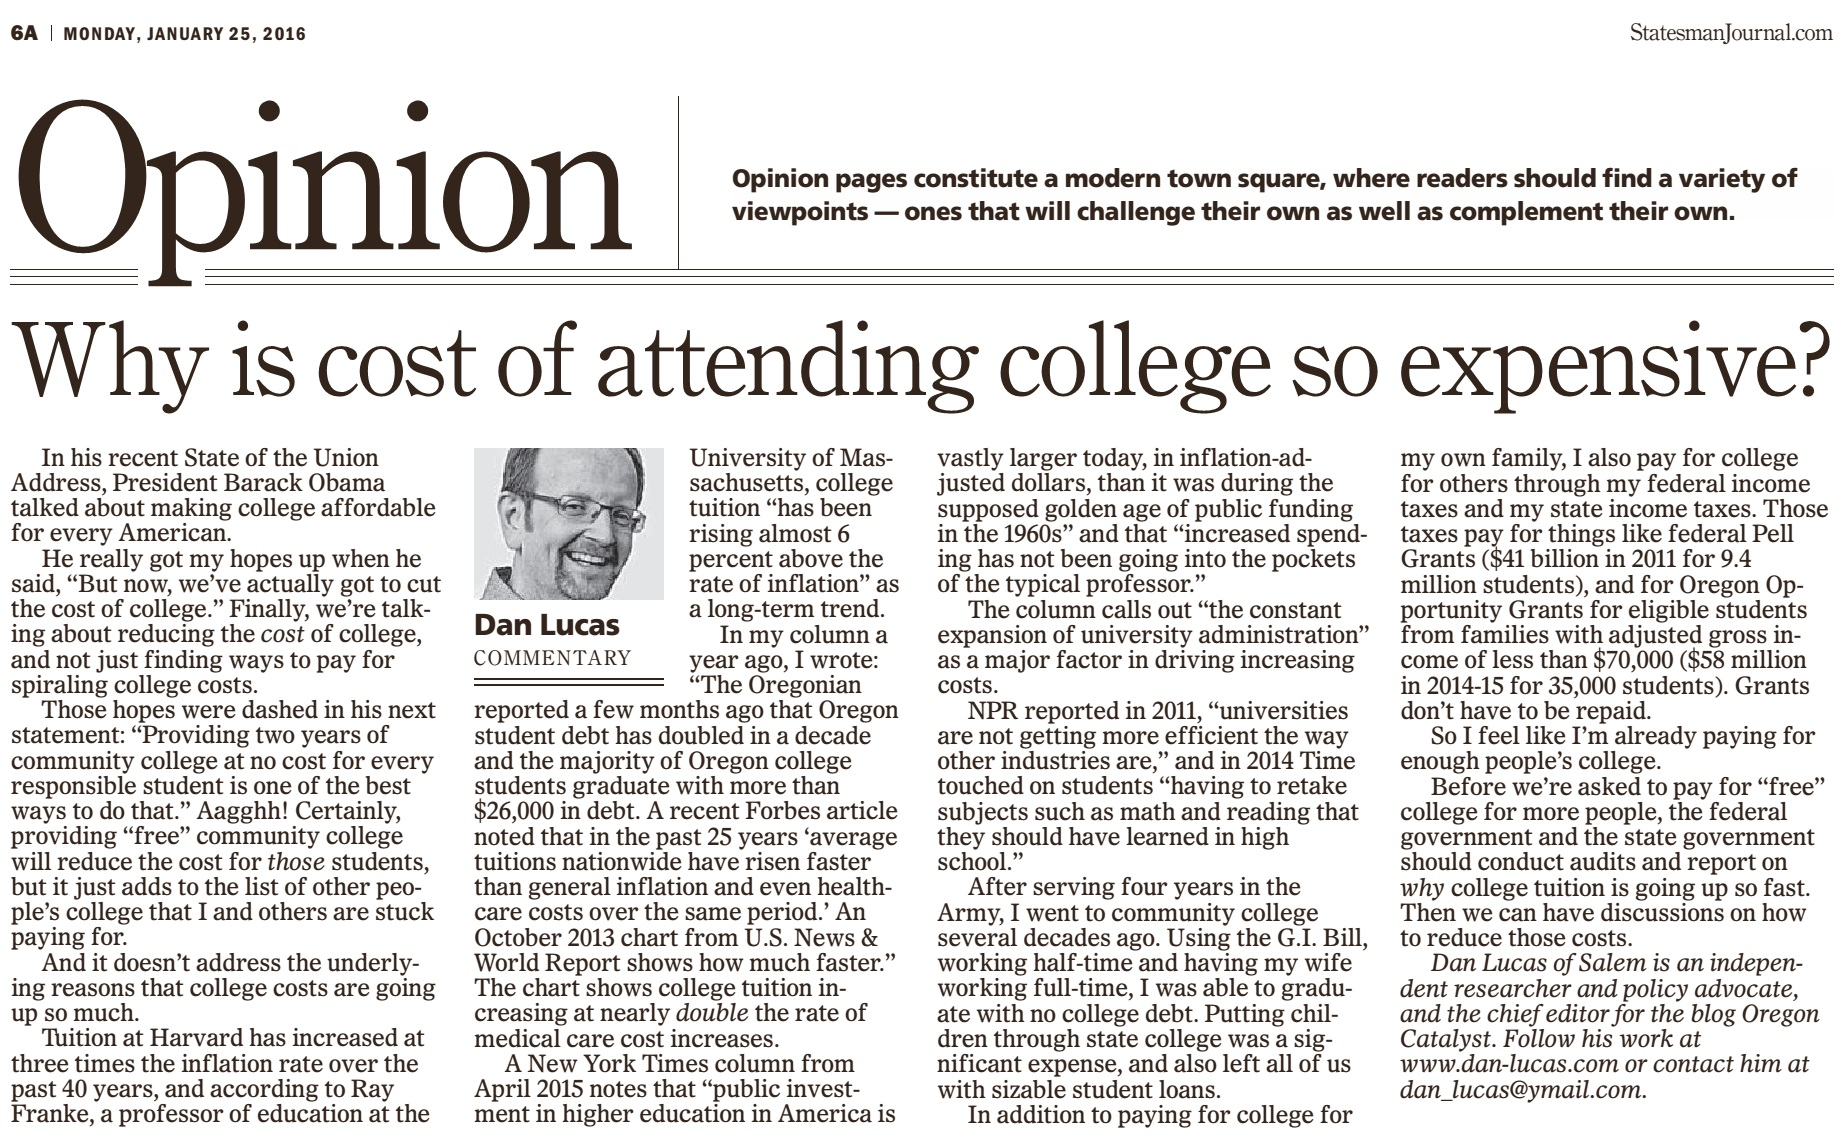 why college is so expensive essay In february 1970, with the school's storied quadrangle by the charles river still in the grip of winter, harvard university broke the bad news to students and their parents: tuition was going up.